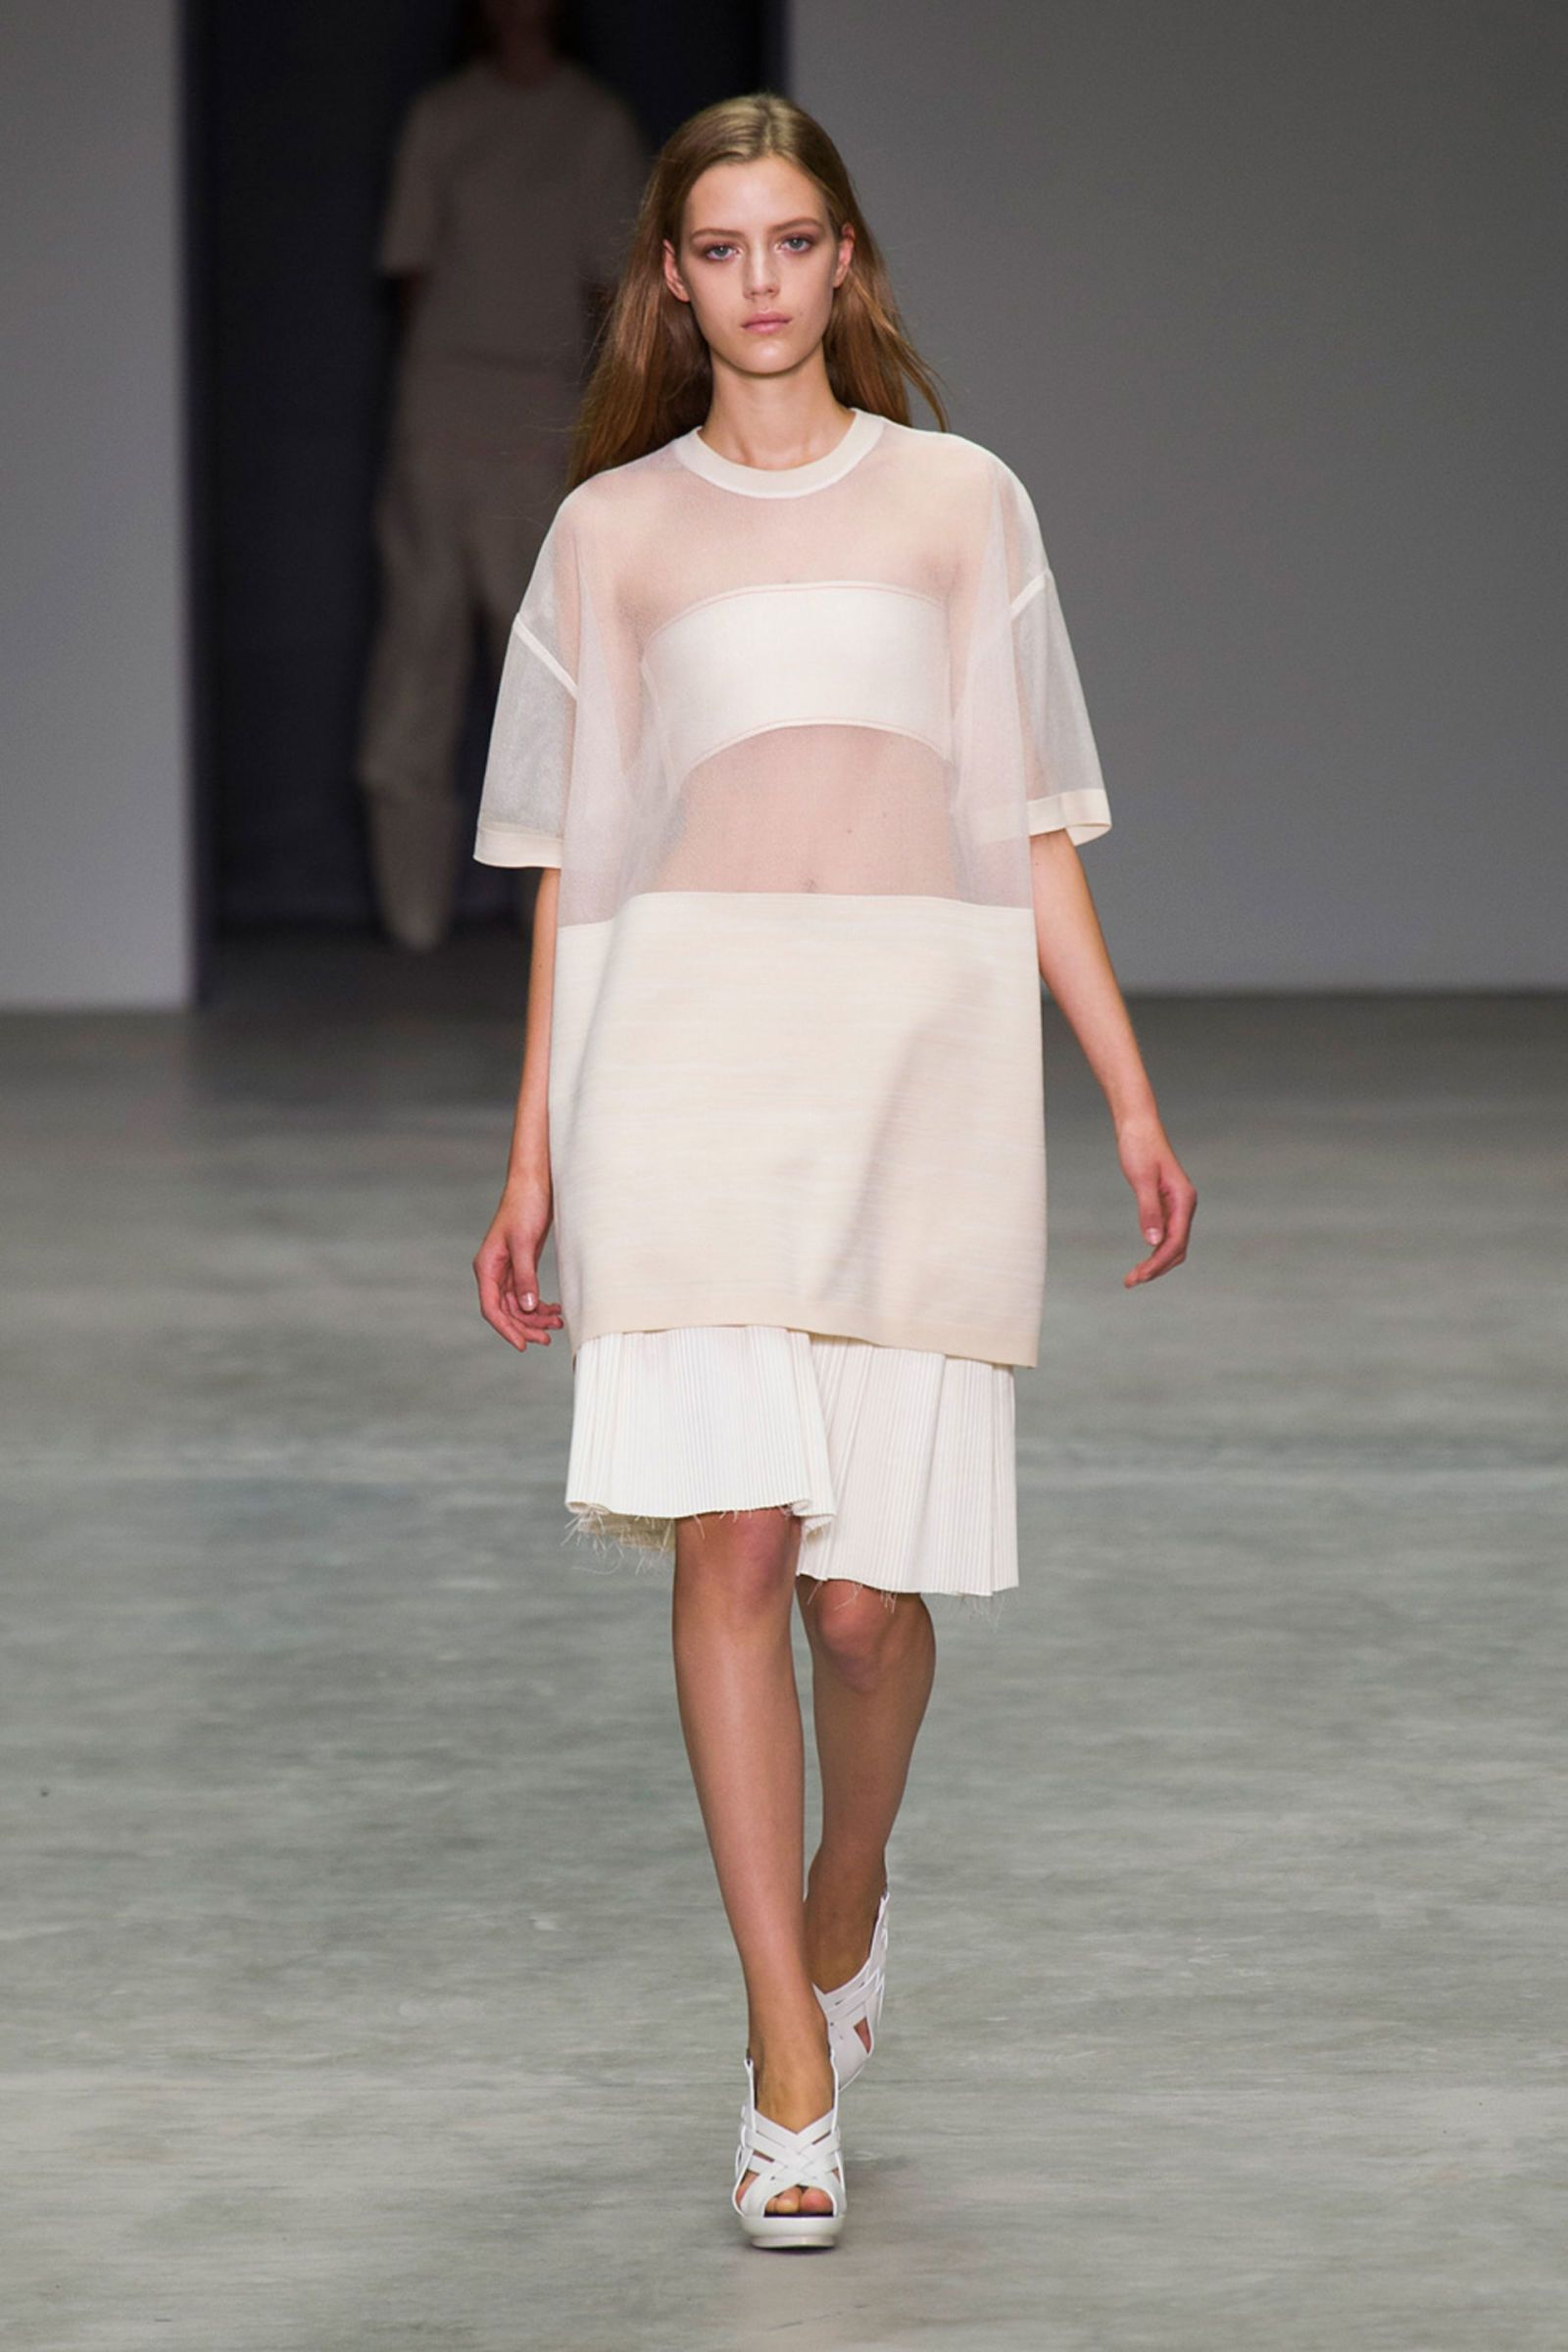 New York Fashion Week SS14: Marie Claire's Top 5 Beauty Looks New York Fashion Week SS14: Marie Claire's Top 5 Beauty Looks new images